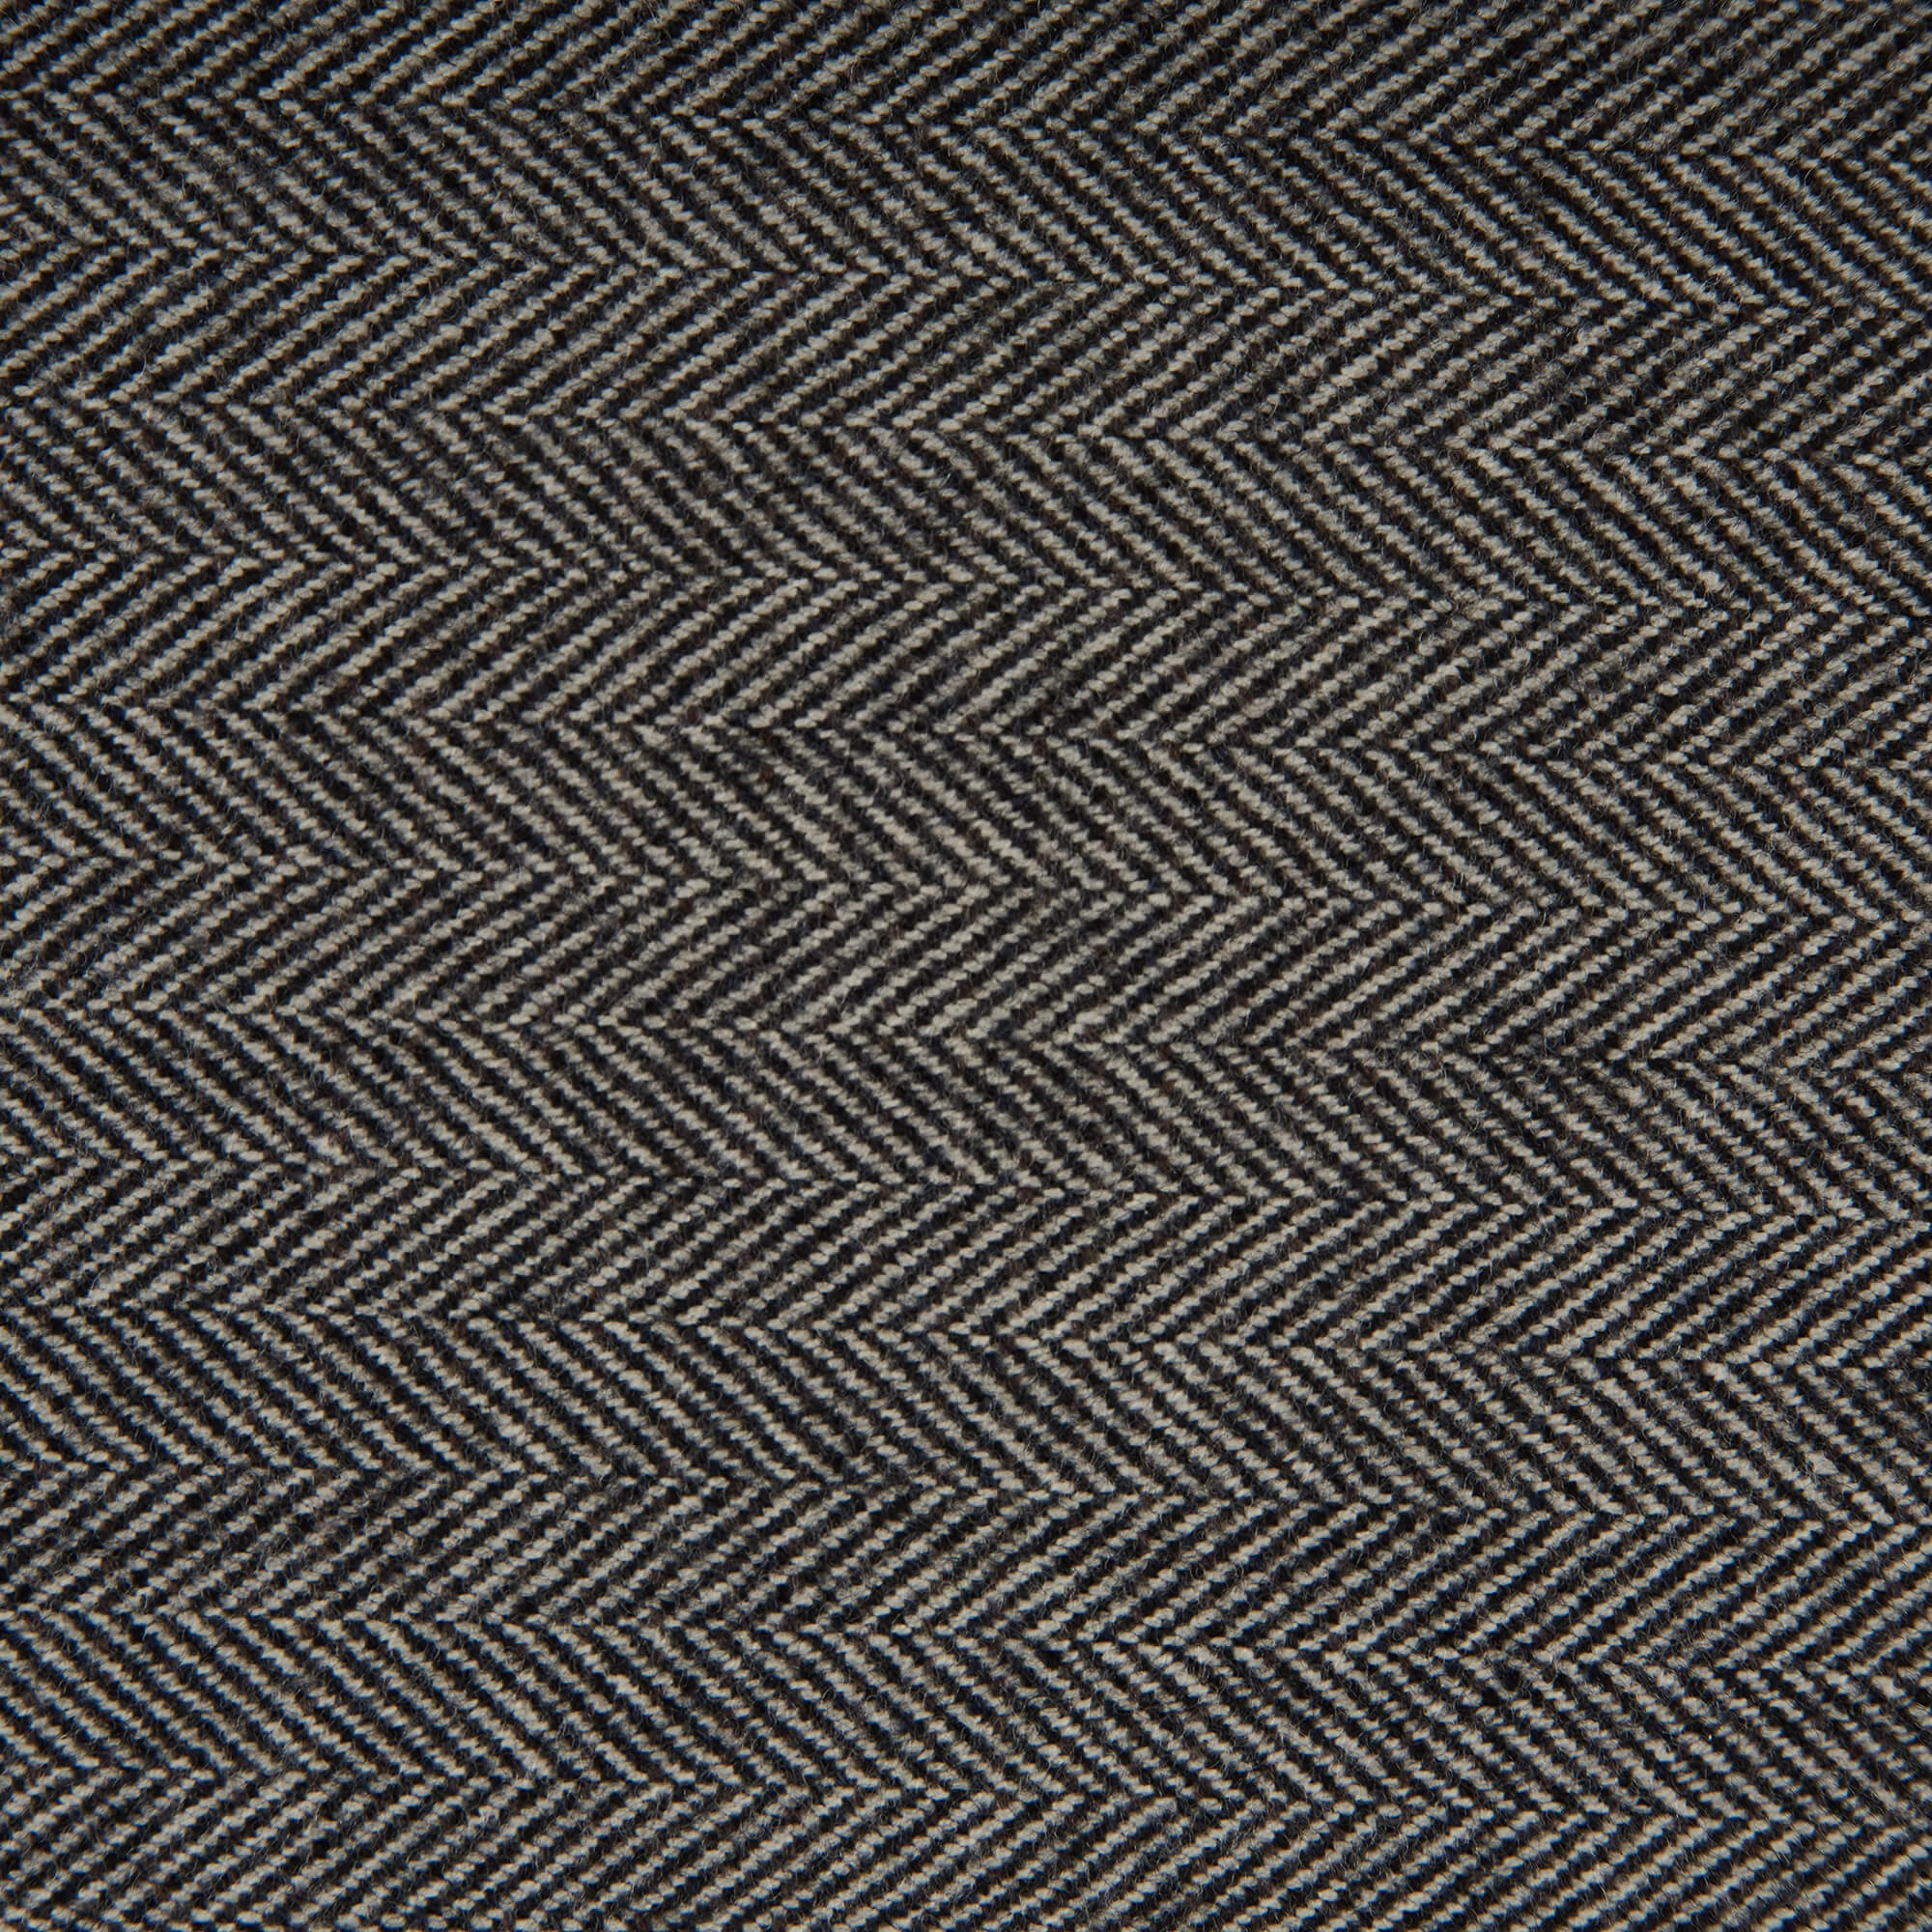 100% wool herringbone saxony fabric sample